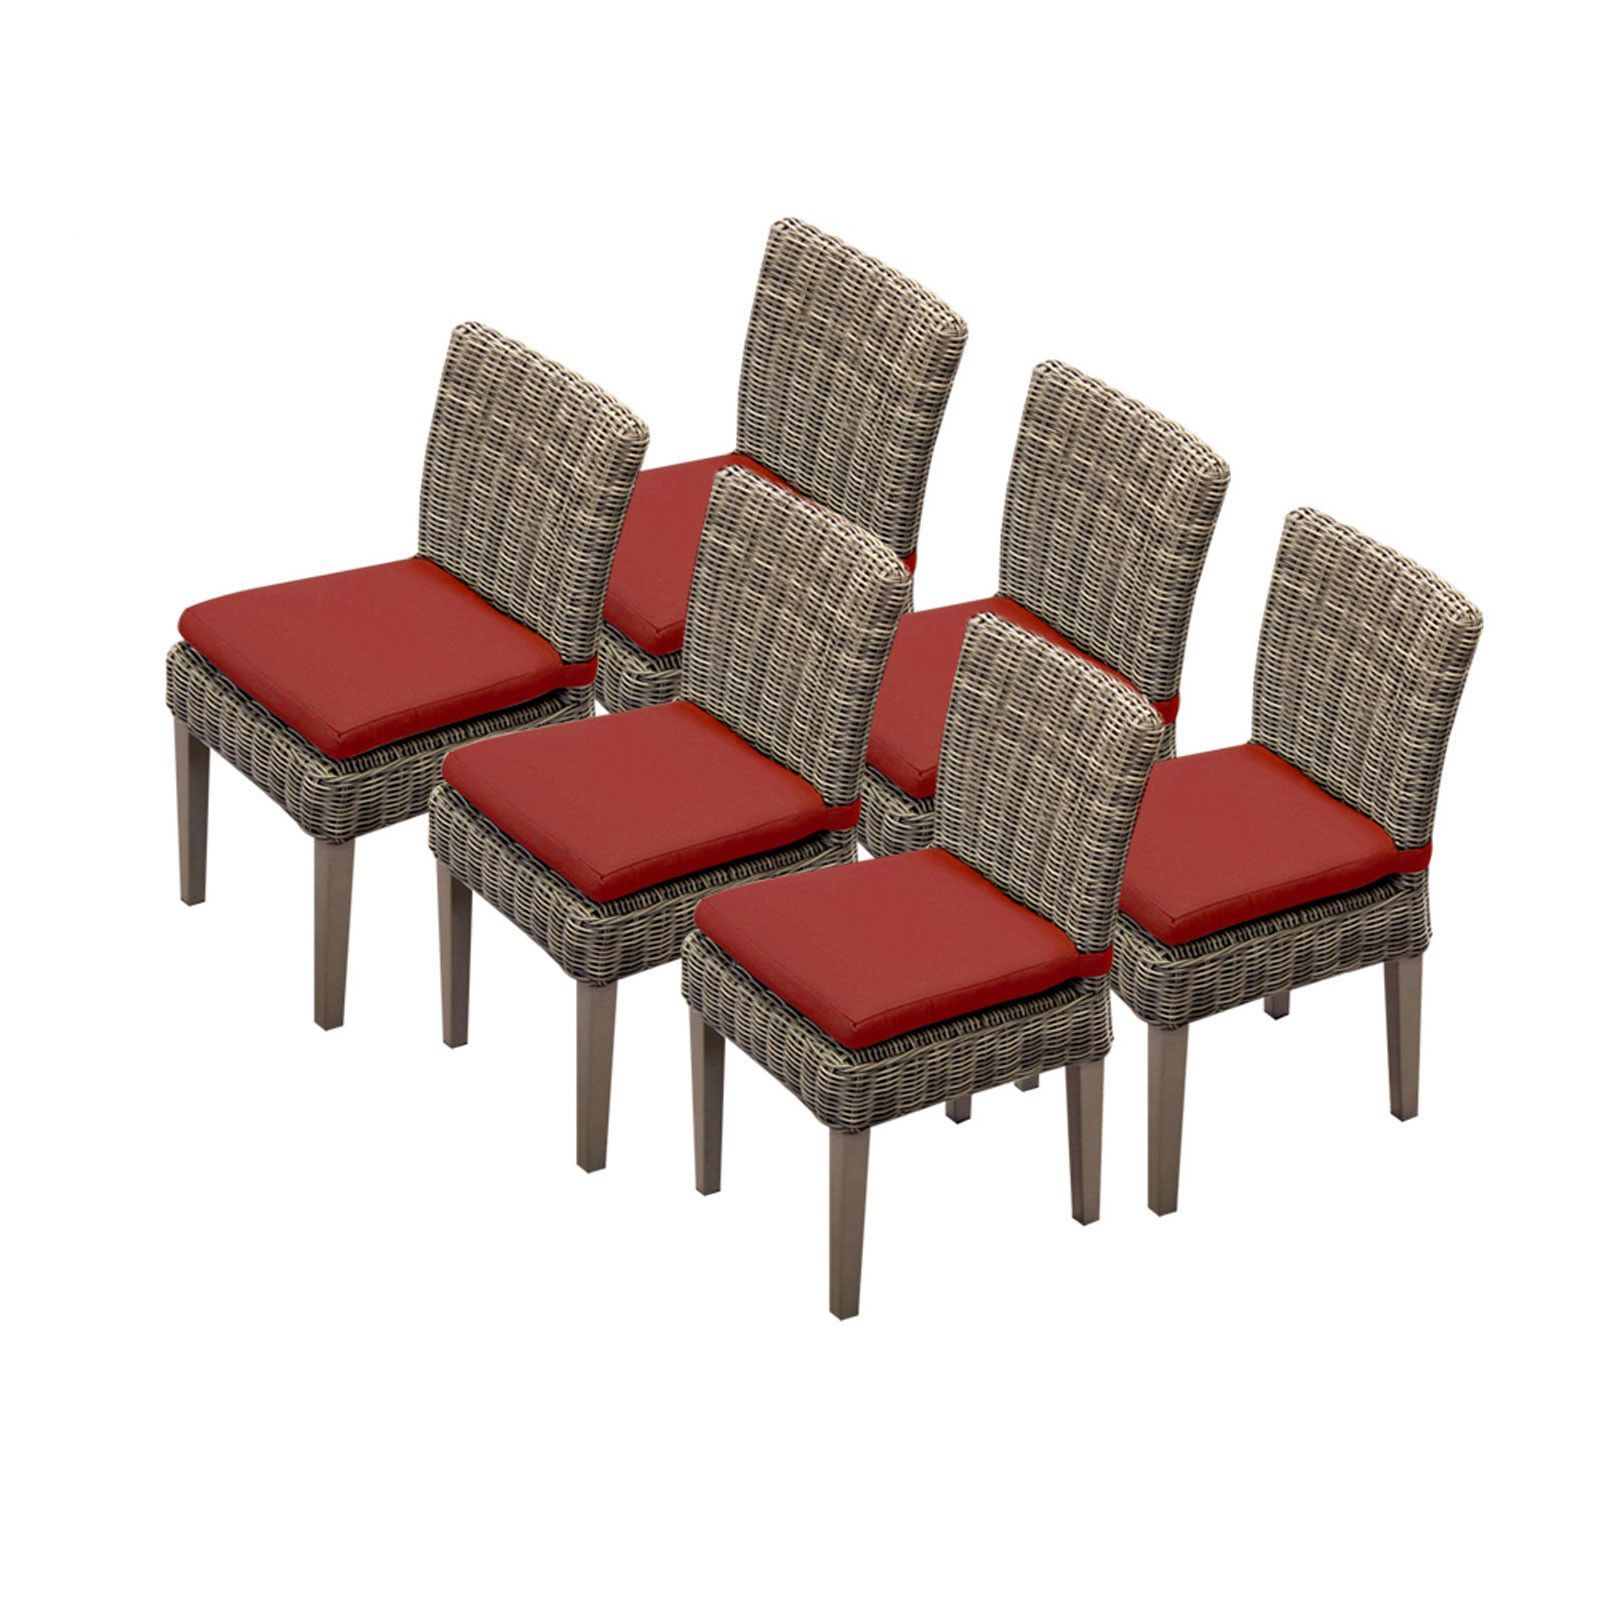 Kuhns dining side chair with cushion products pinterest side